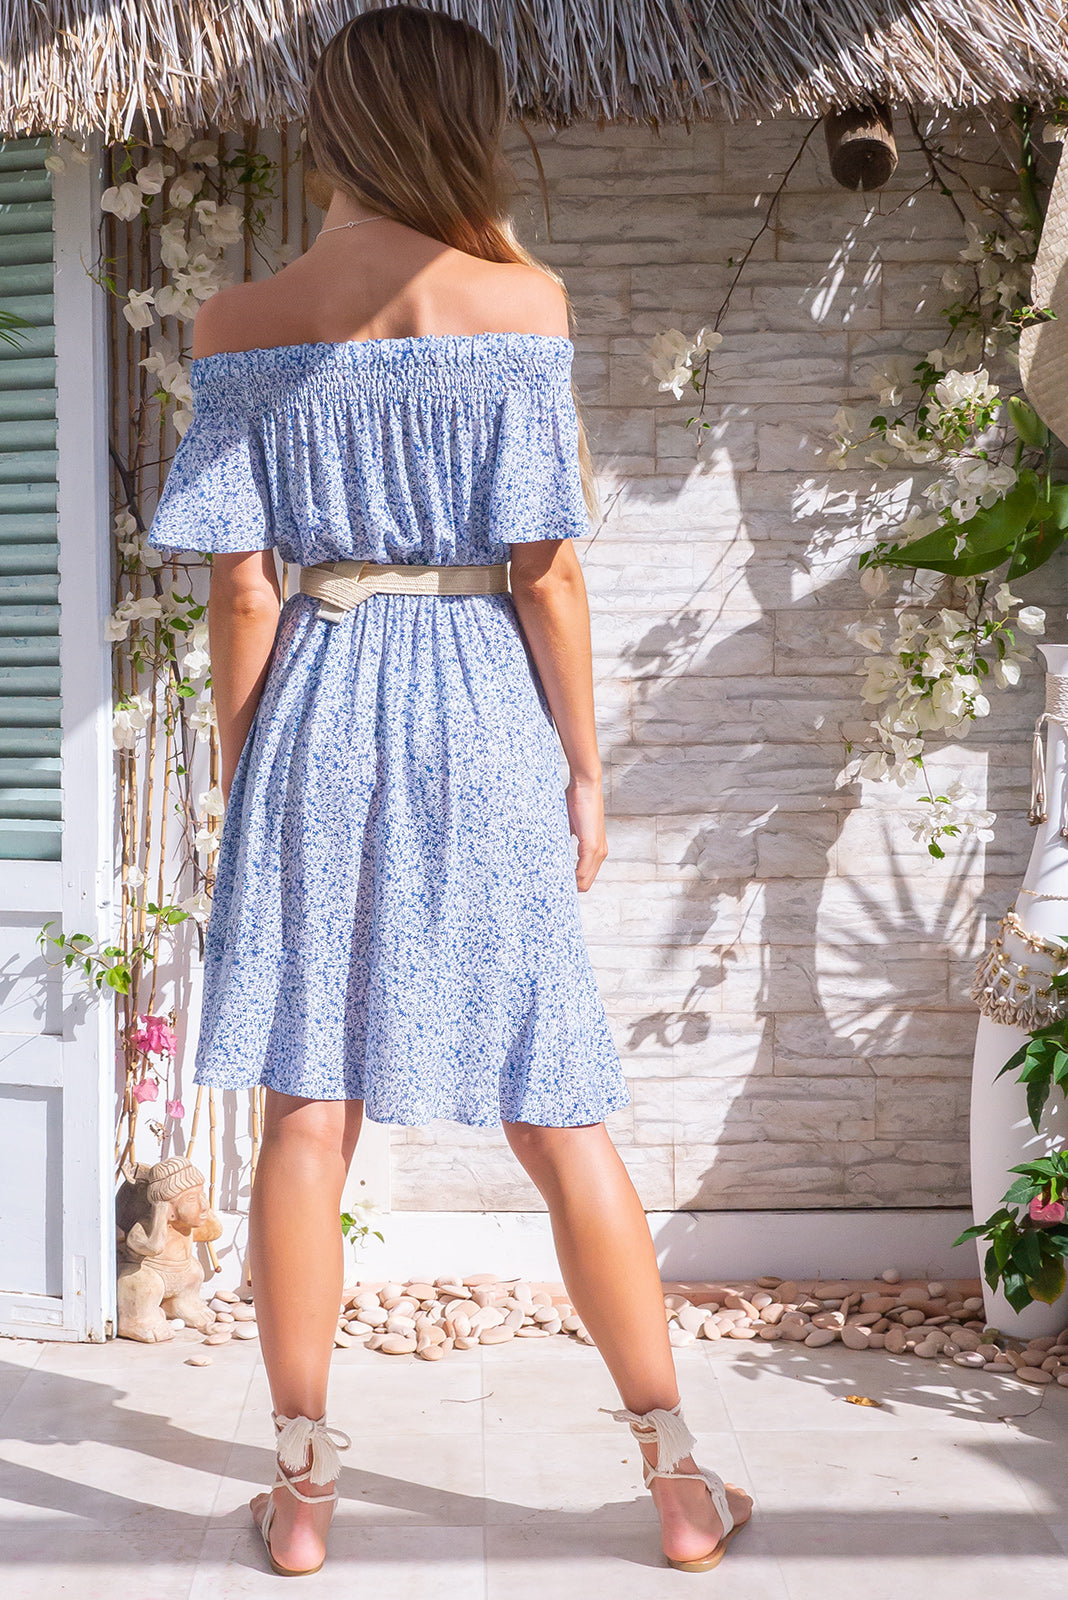 Roxie Blue Daze Mini Dress, summer bohemian style, 100% viscose, has soft elastic and ruching to gently hold the dress across the shoulders, side pockets, elasticated waist, deep sky blue base with a small white floral print.